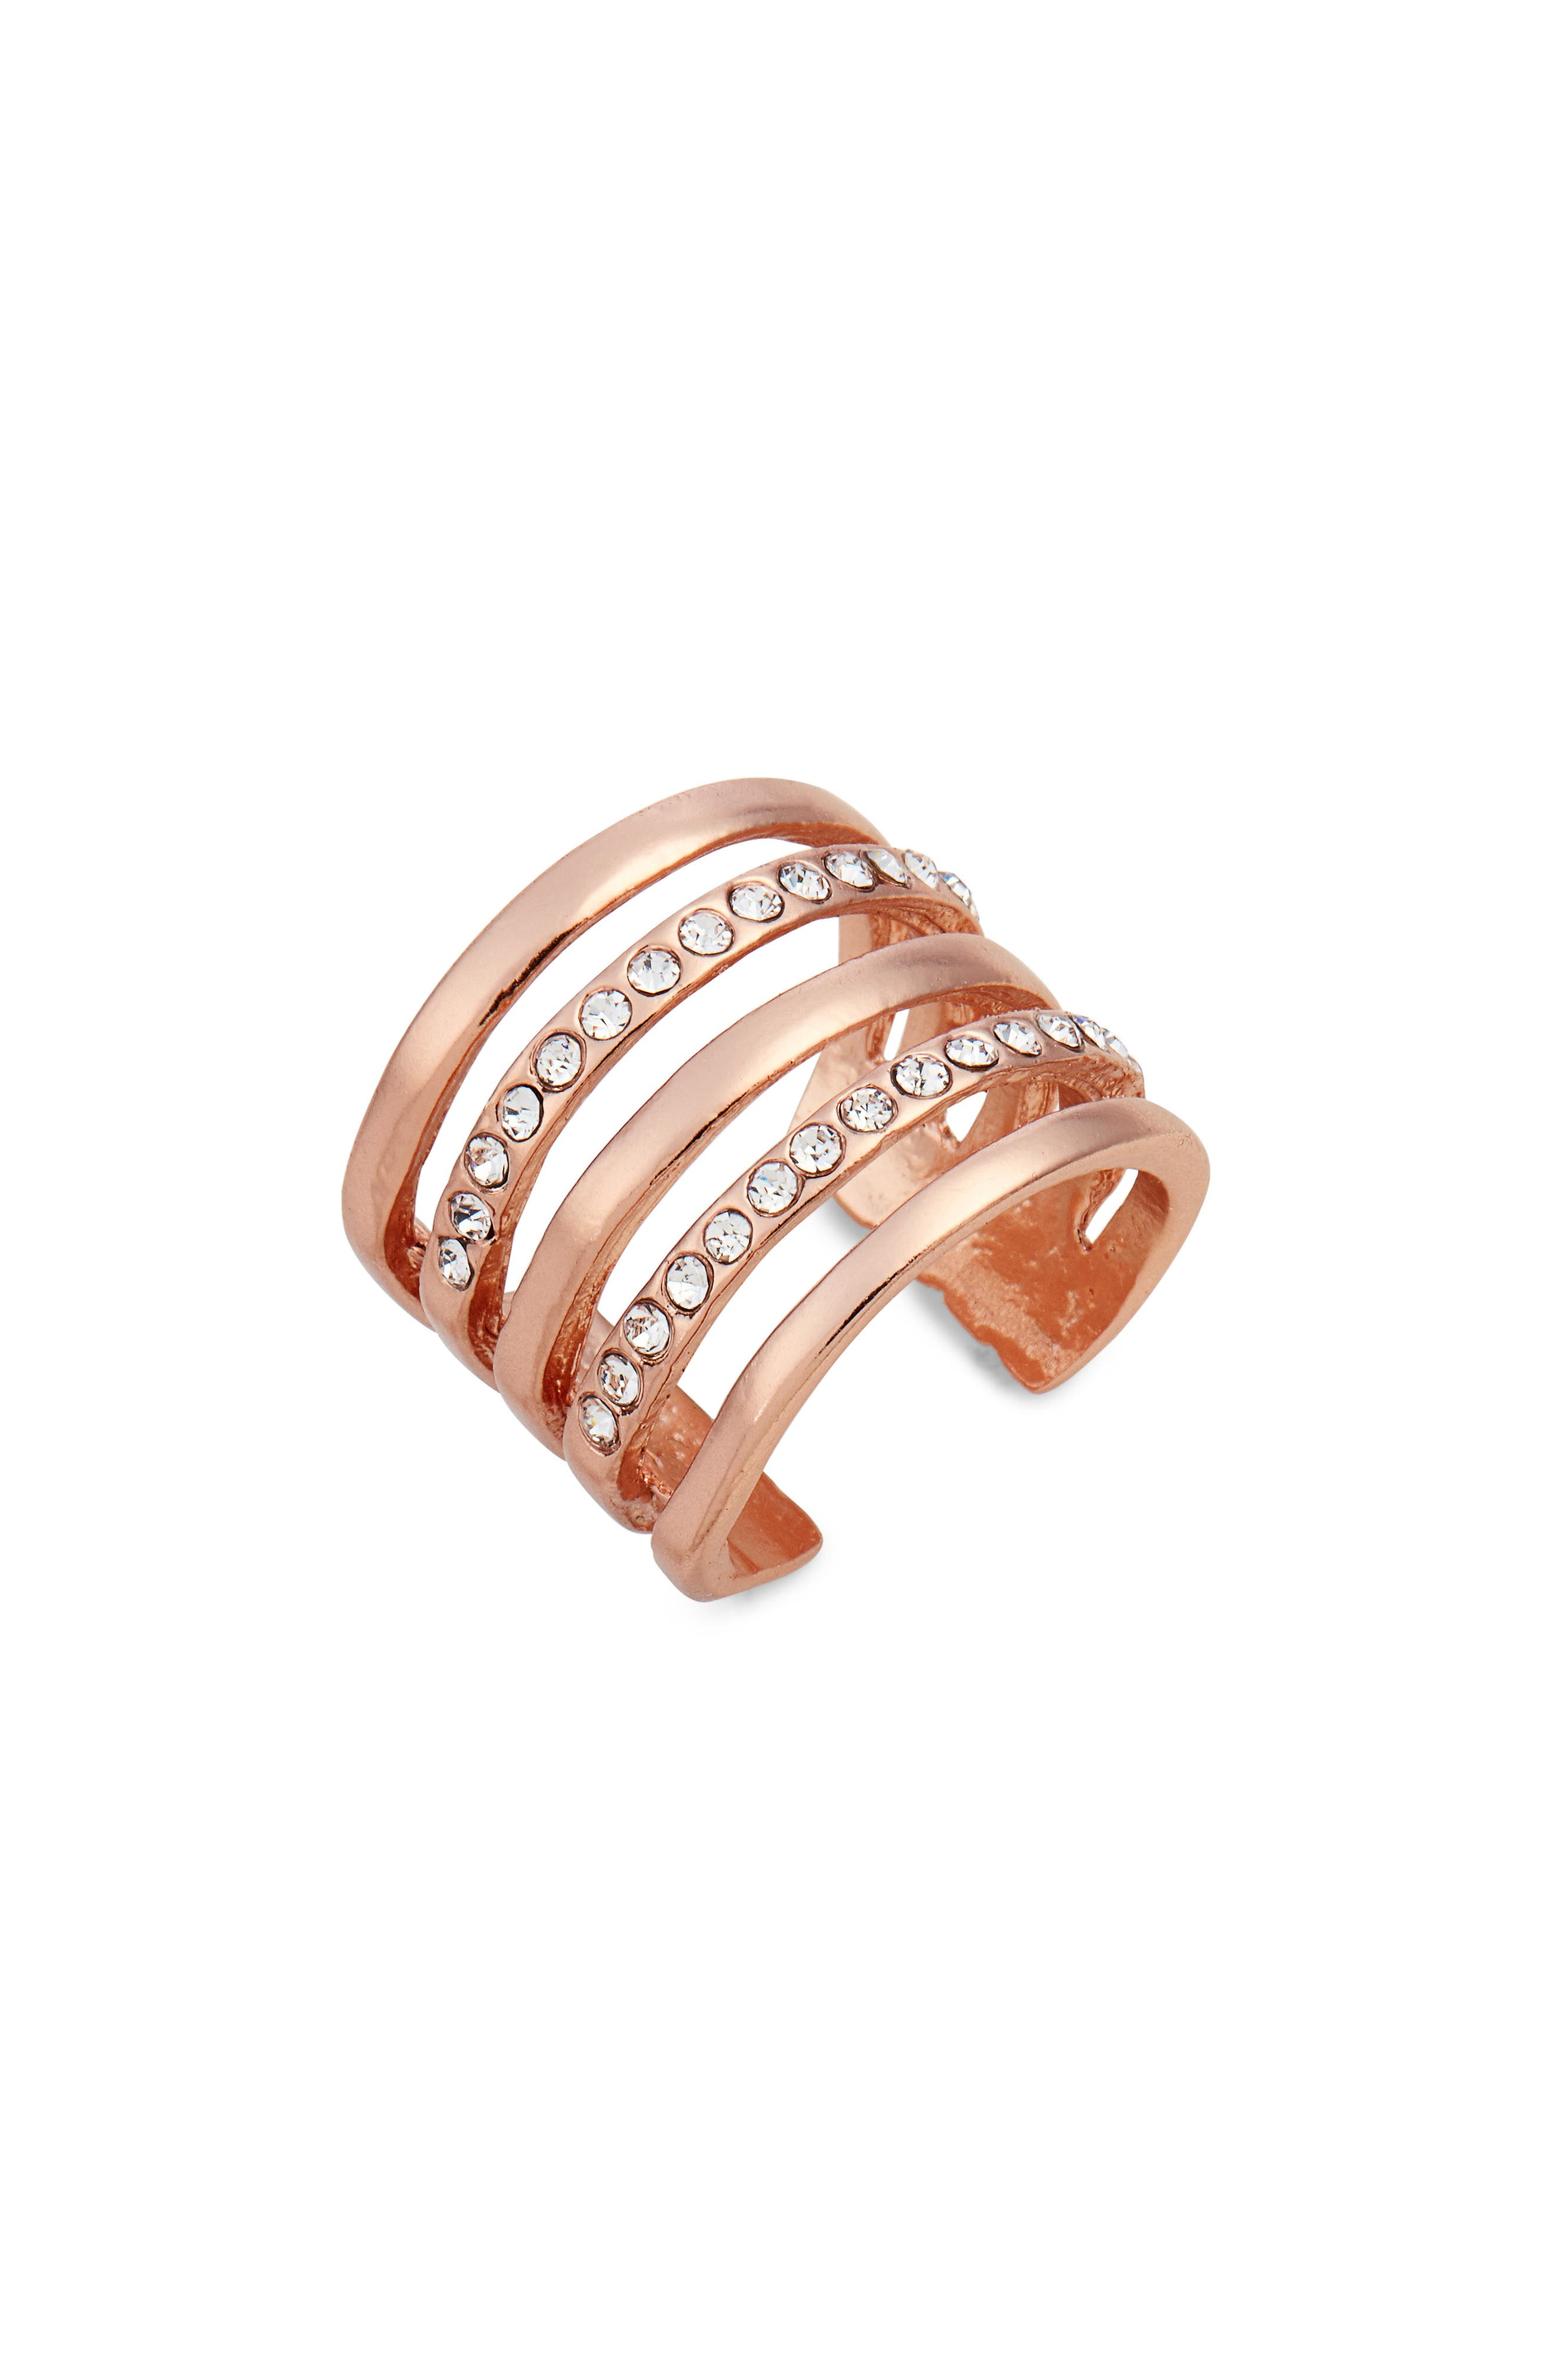 Claire Cage Ring,                             Main thumbnail 1, color,                             Rose Gold